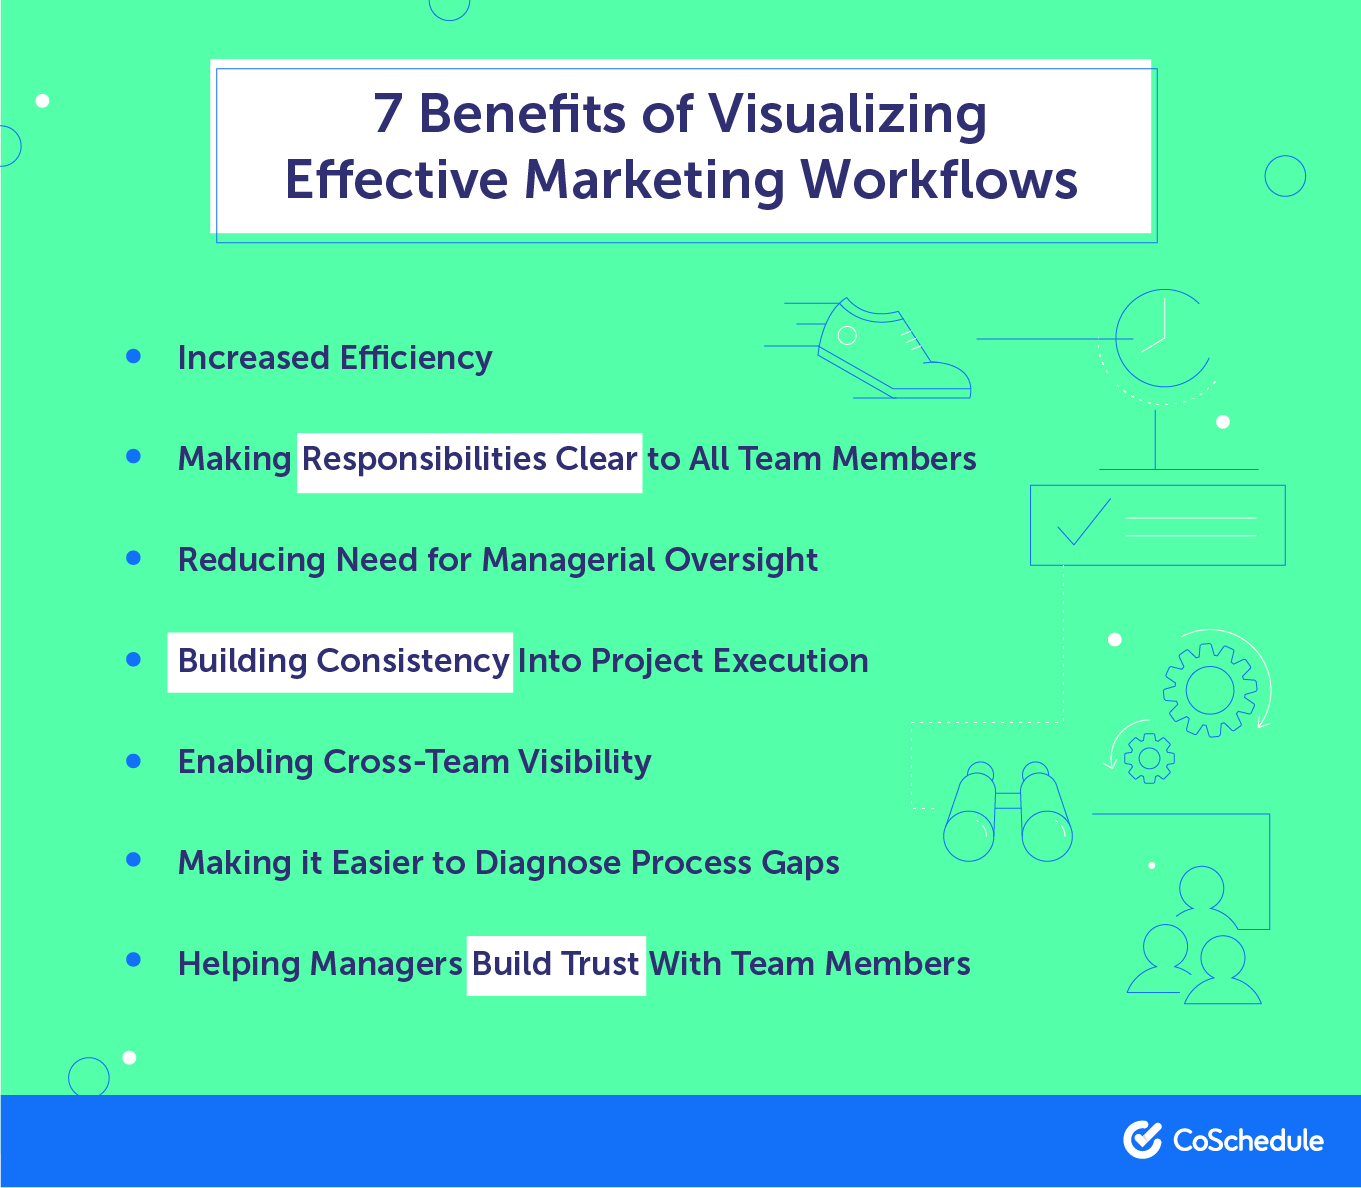 7 benefits of visualizing effective marketing workflows